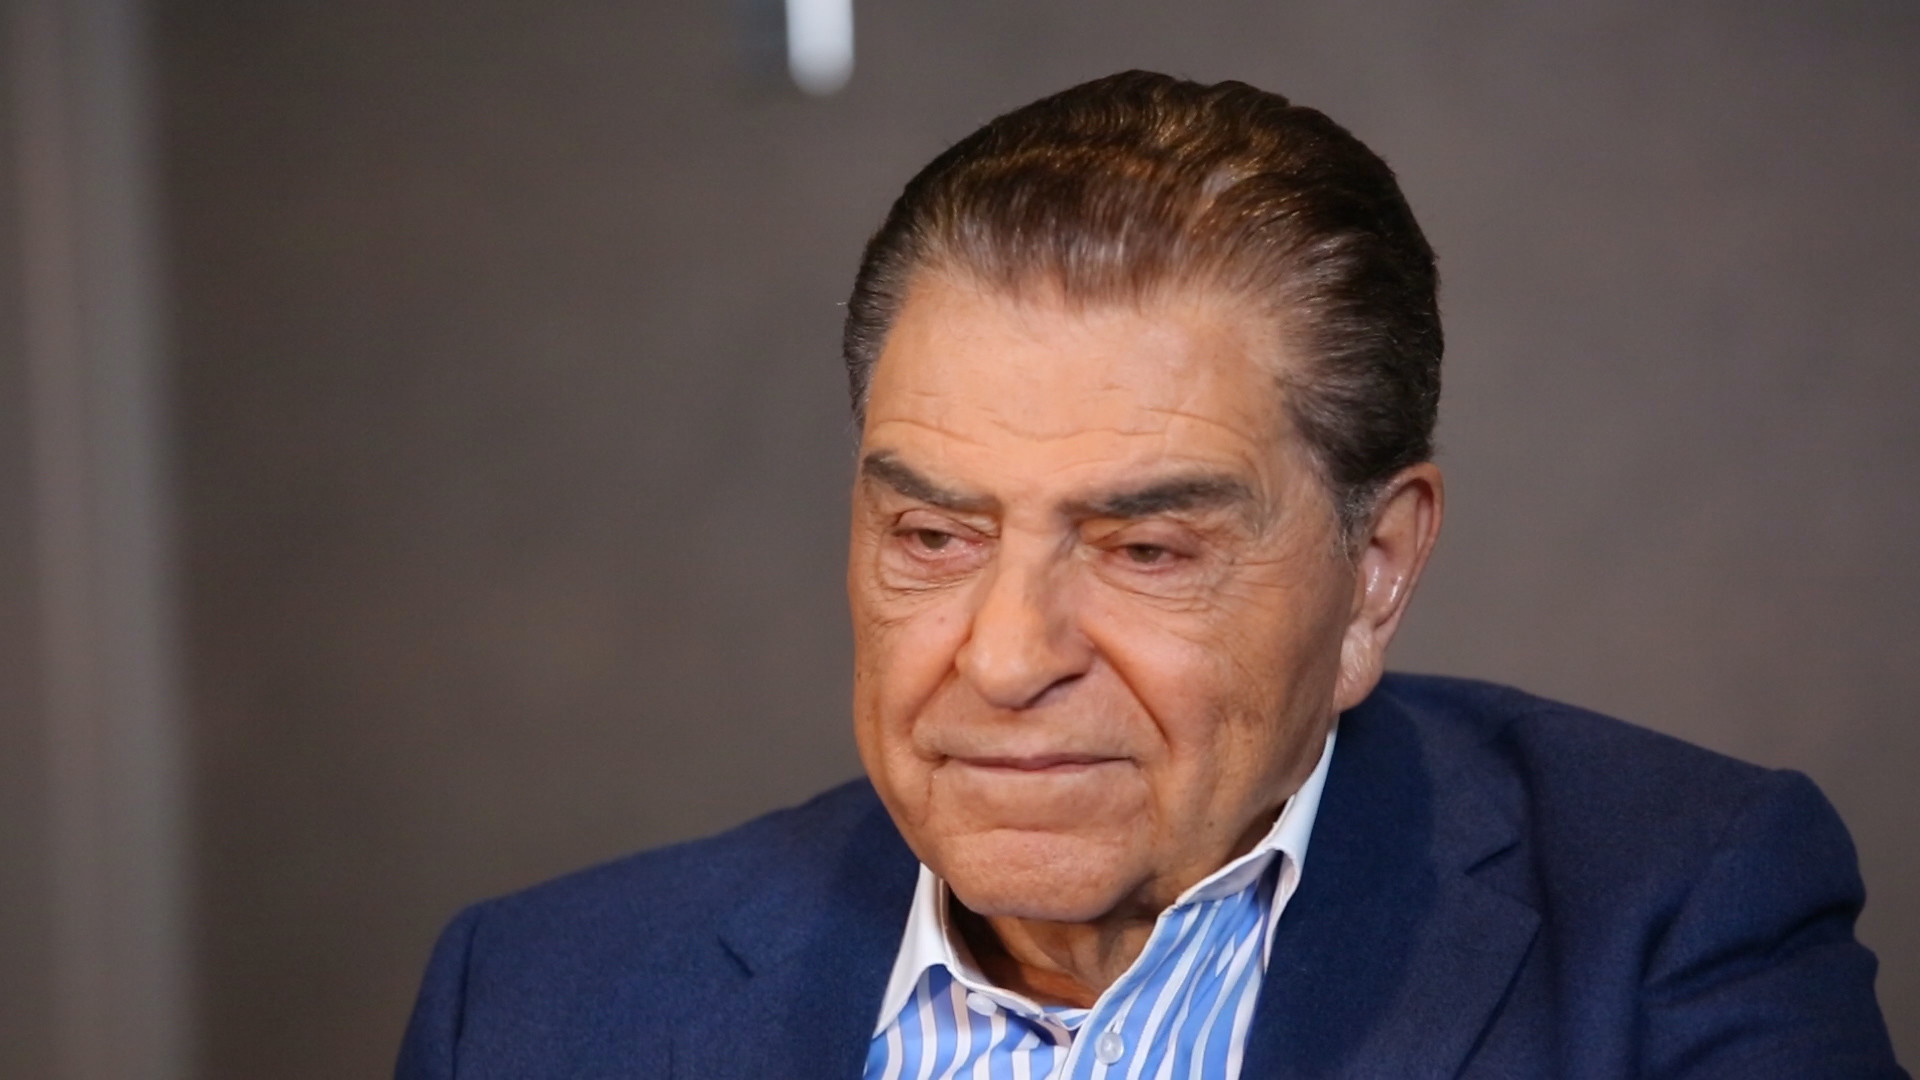 TV host Don Francisco's roots are German, but he 'feels' the Latino culture - LA Times